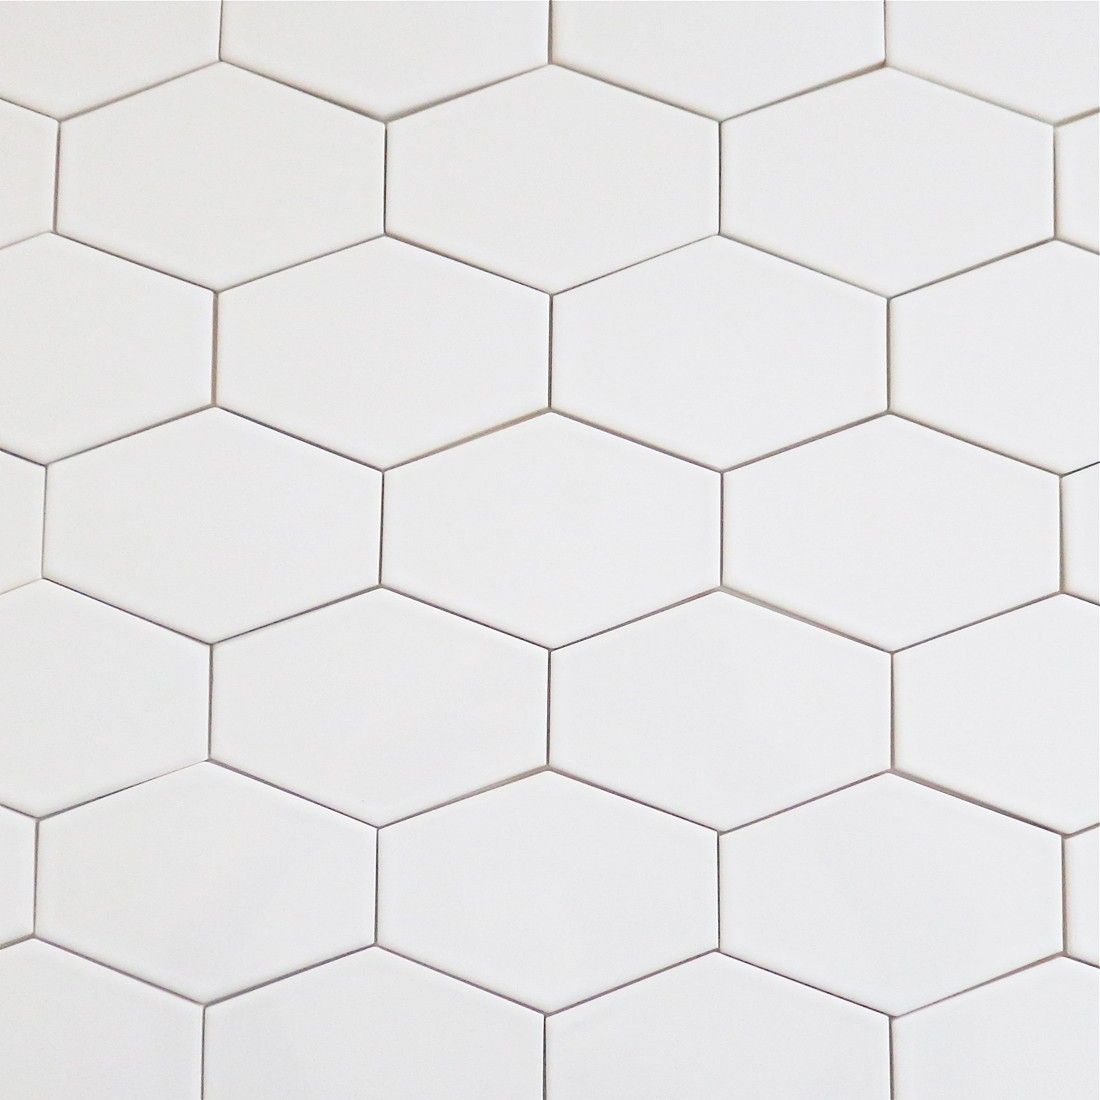 White Ceramic Hexagon Tile Tile Design Ideas